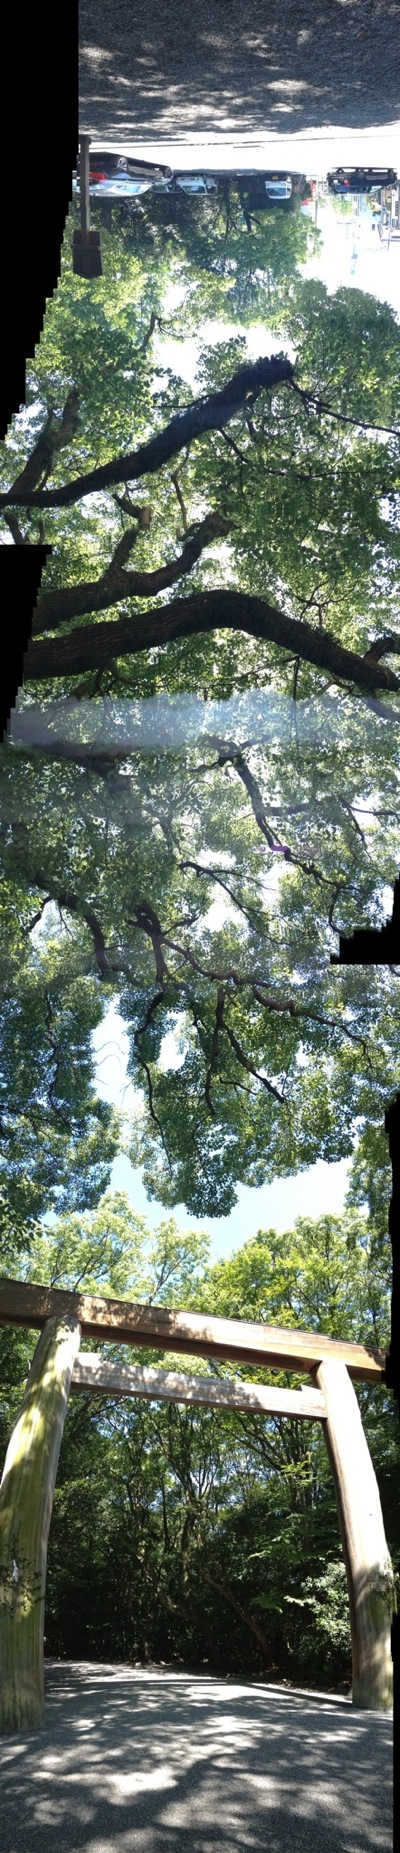 Iphone panorama photo 10